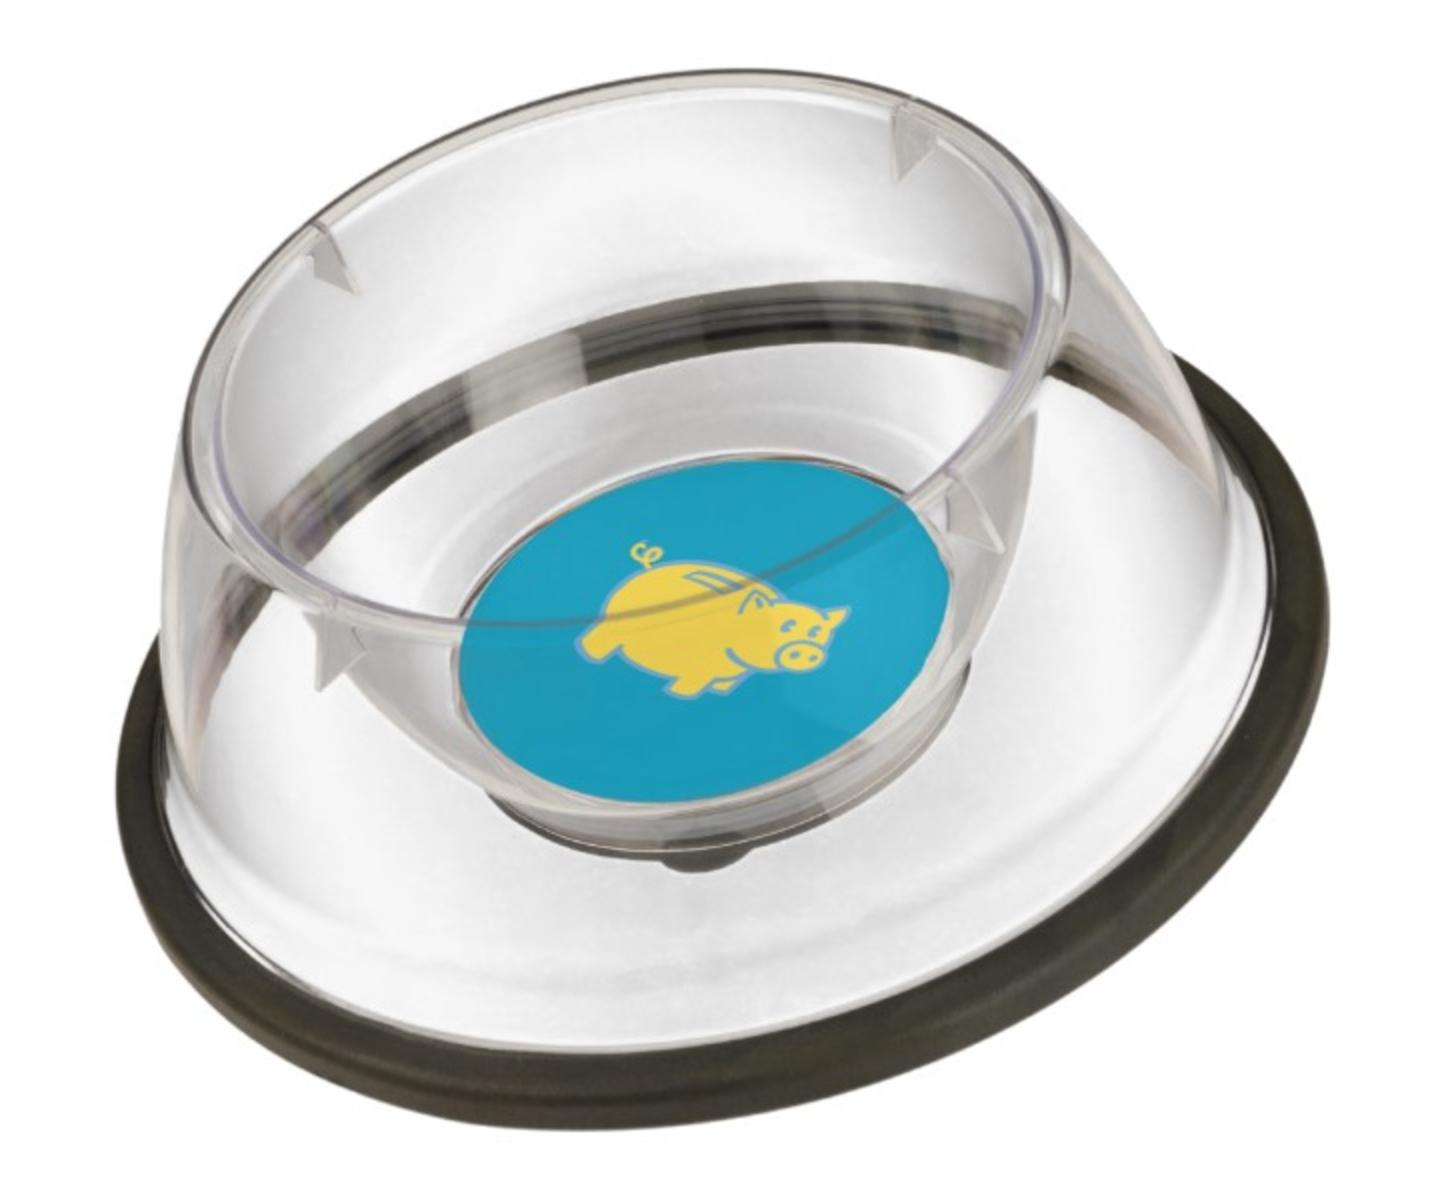 Signature Pet Bowl